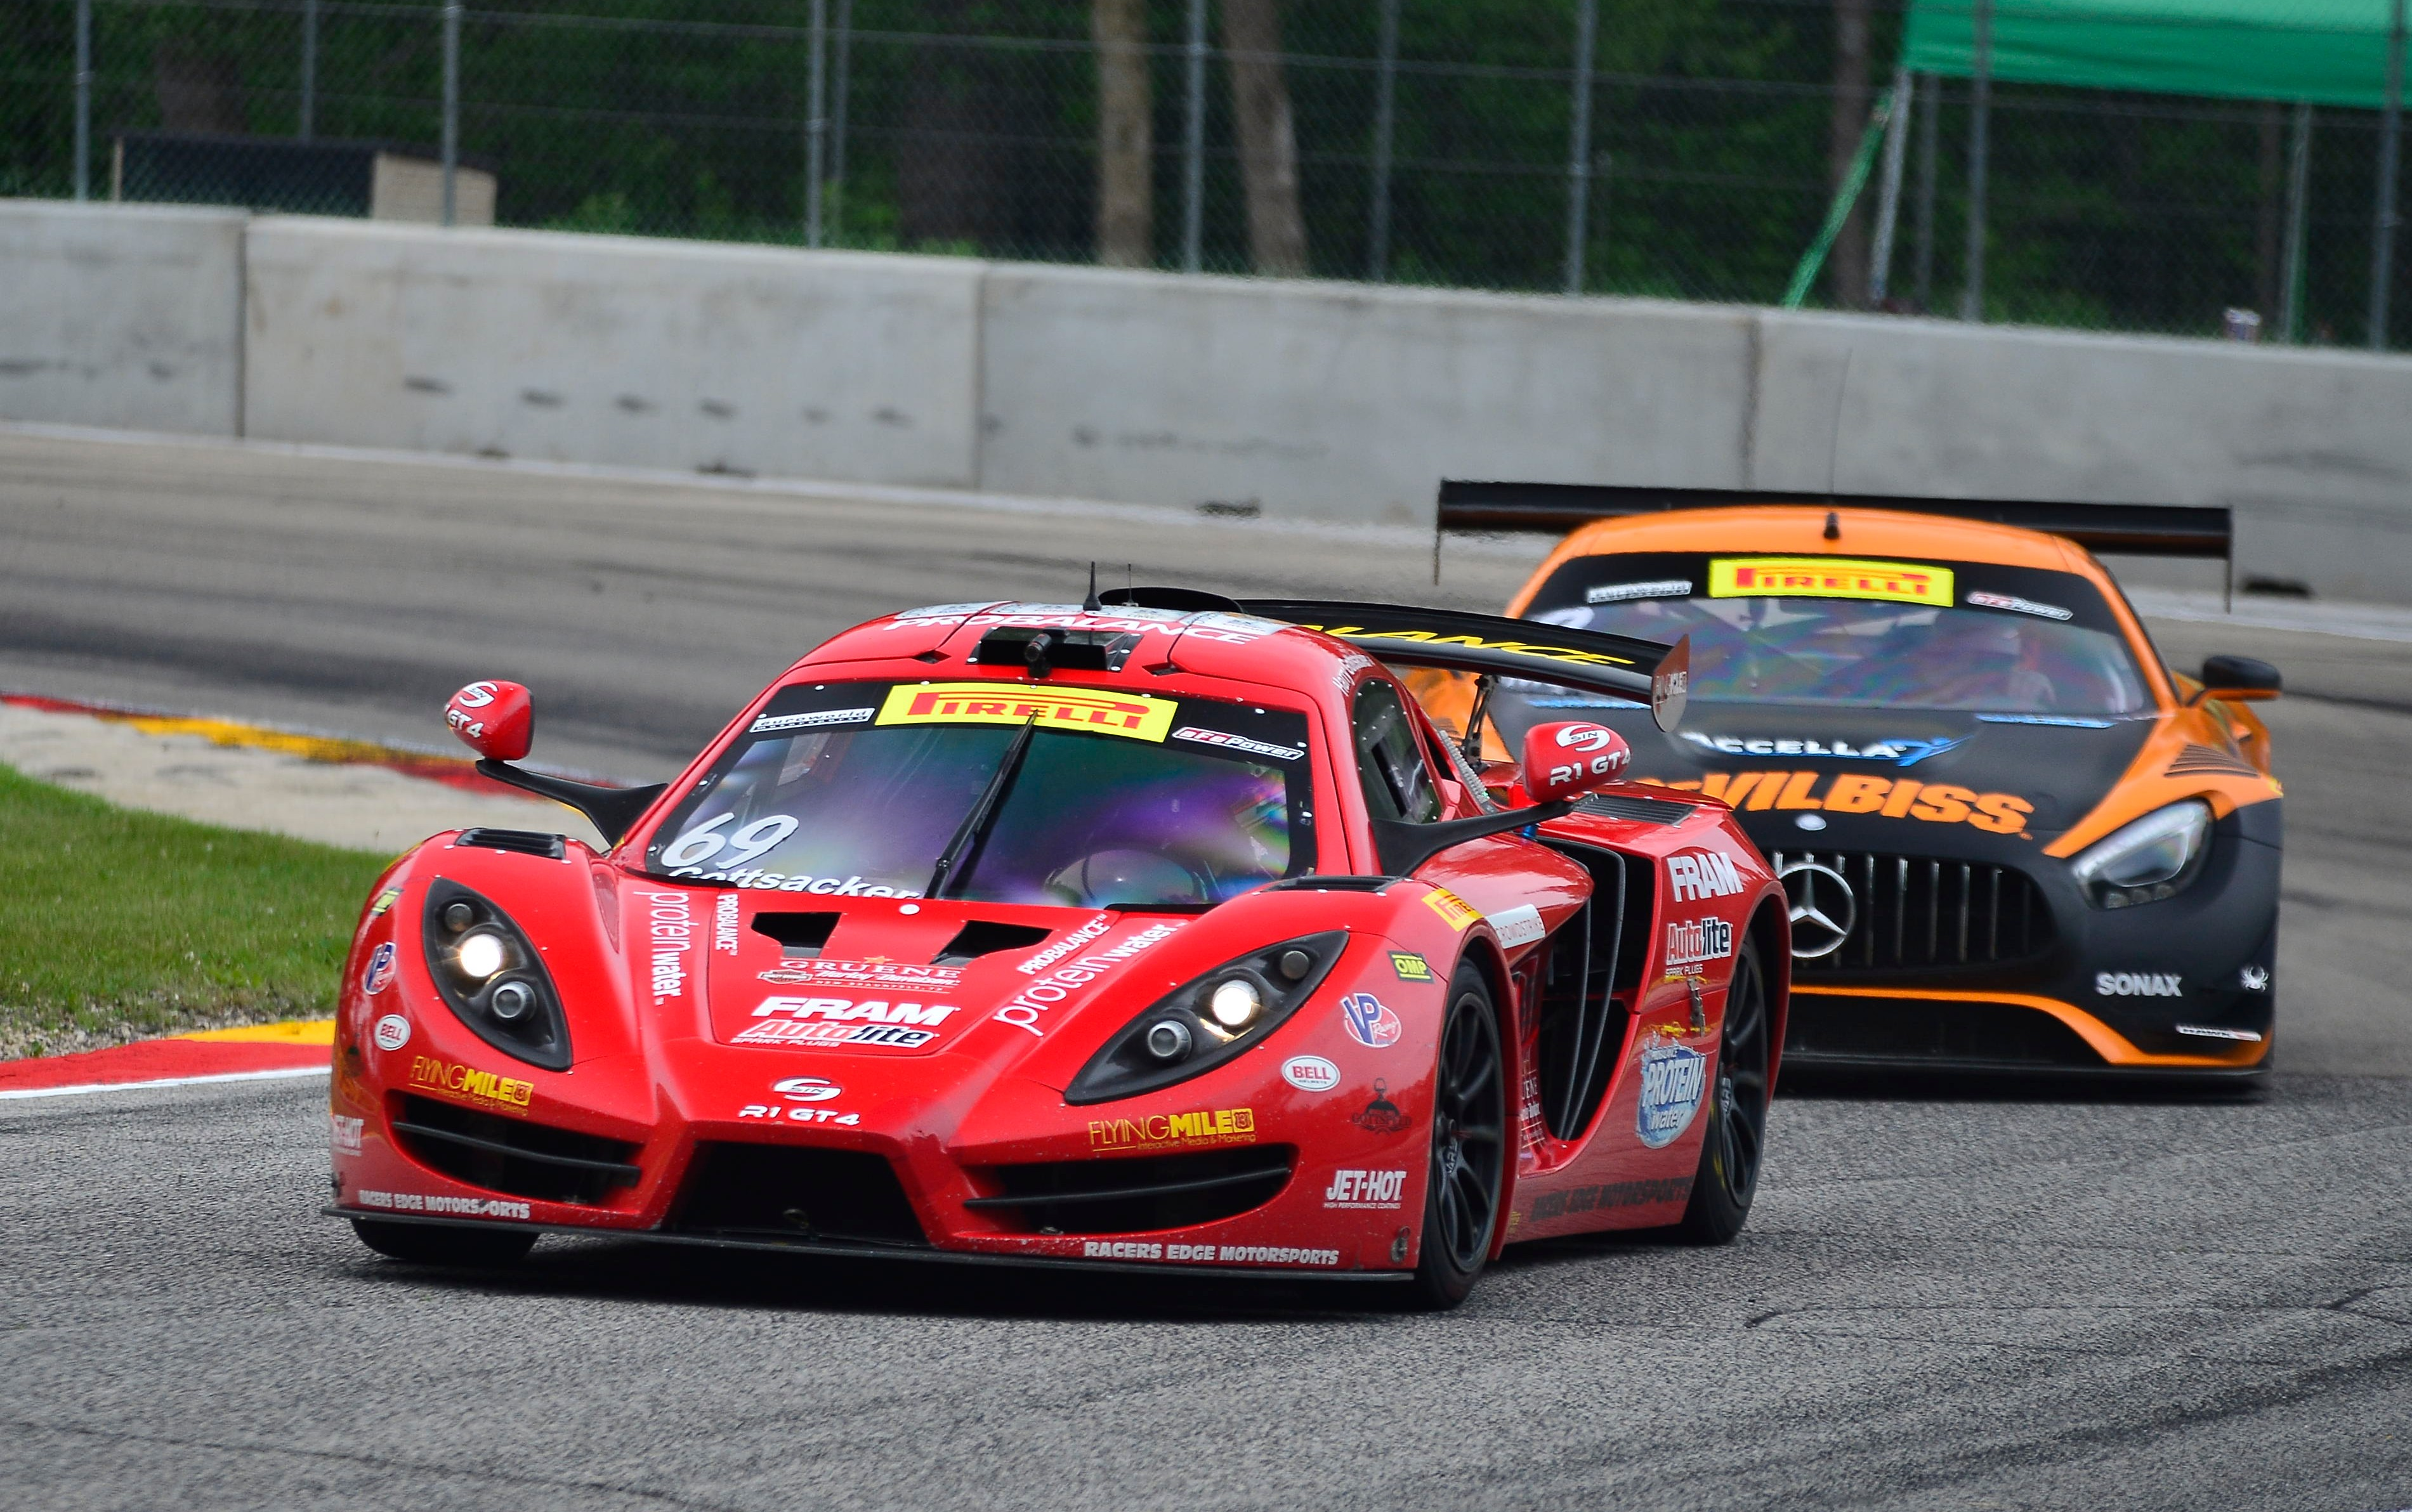 Racers Edge at Road America